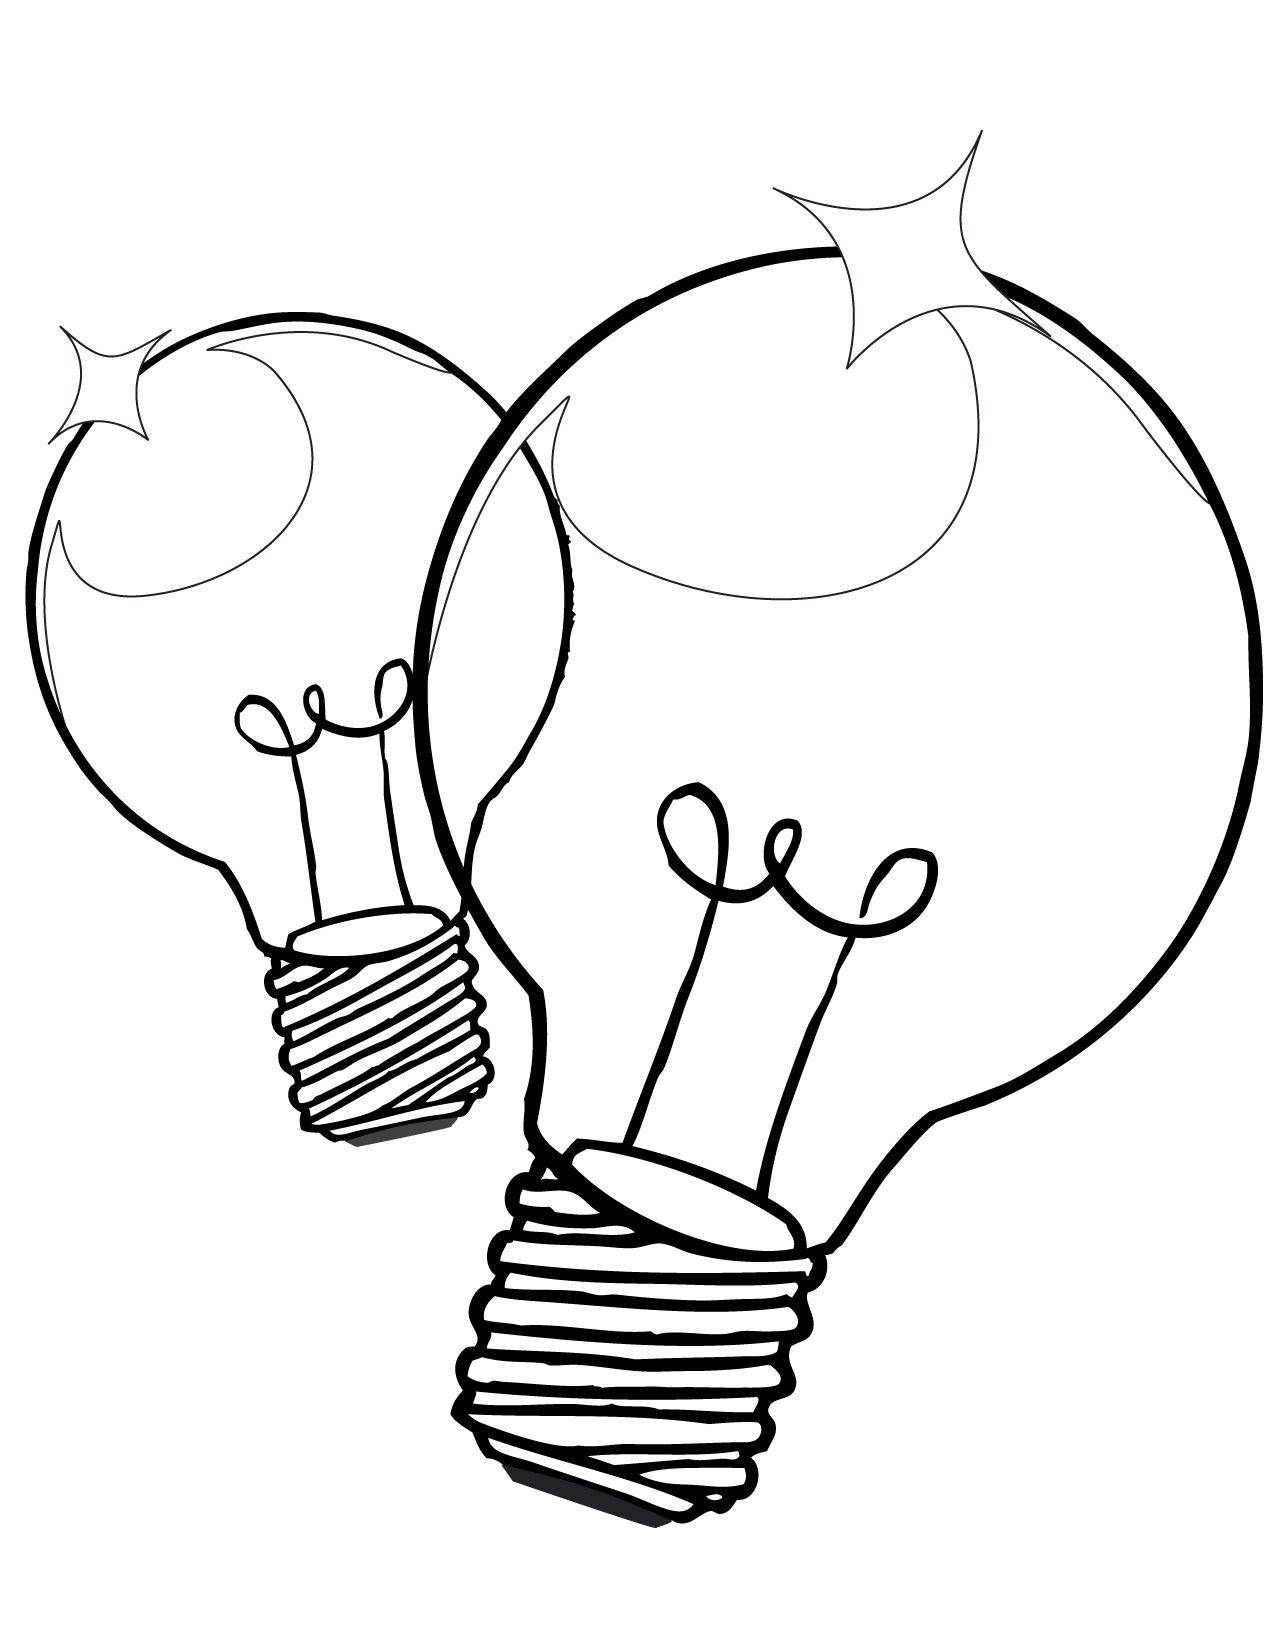 1275x1650 Thomas Edison Inventions Coloring Page Coloring Page For Kids